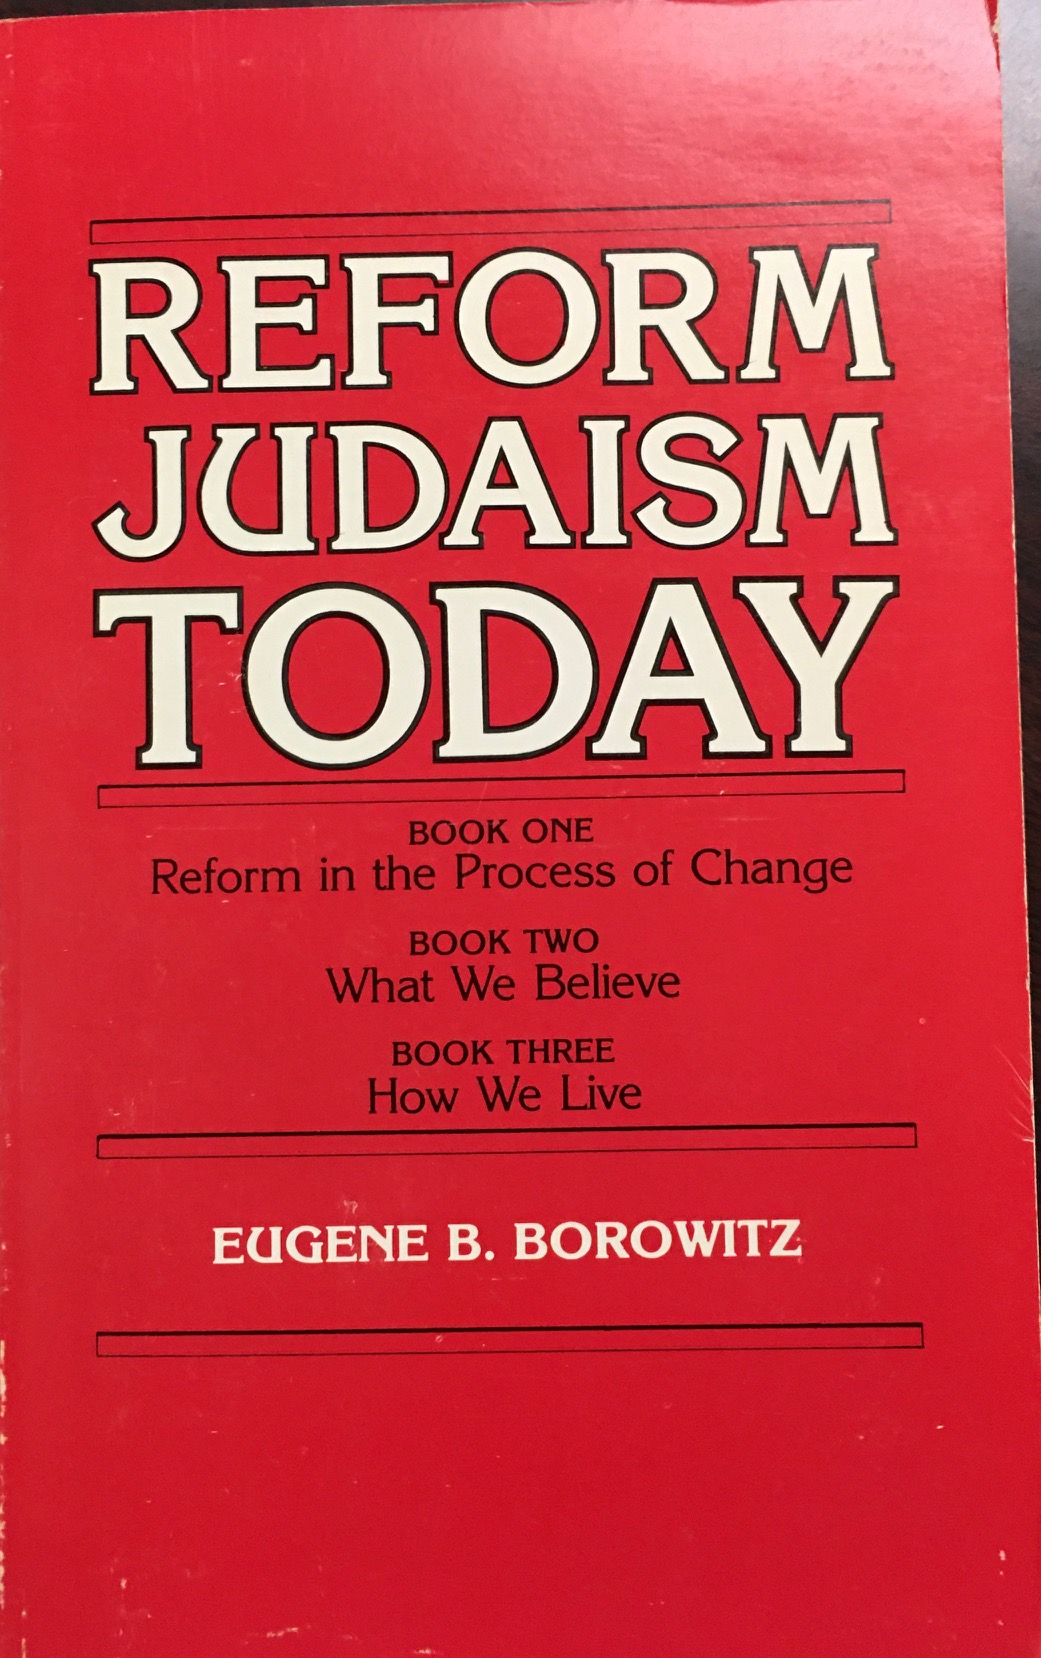 Image for Reform Judaism Today by Eugene B. Borowitz (1983-01-01)